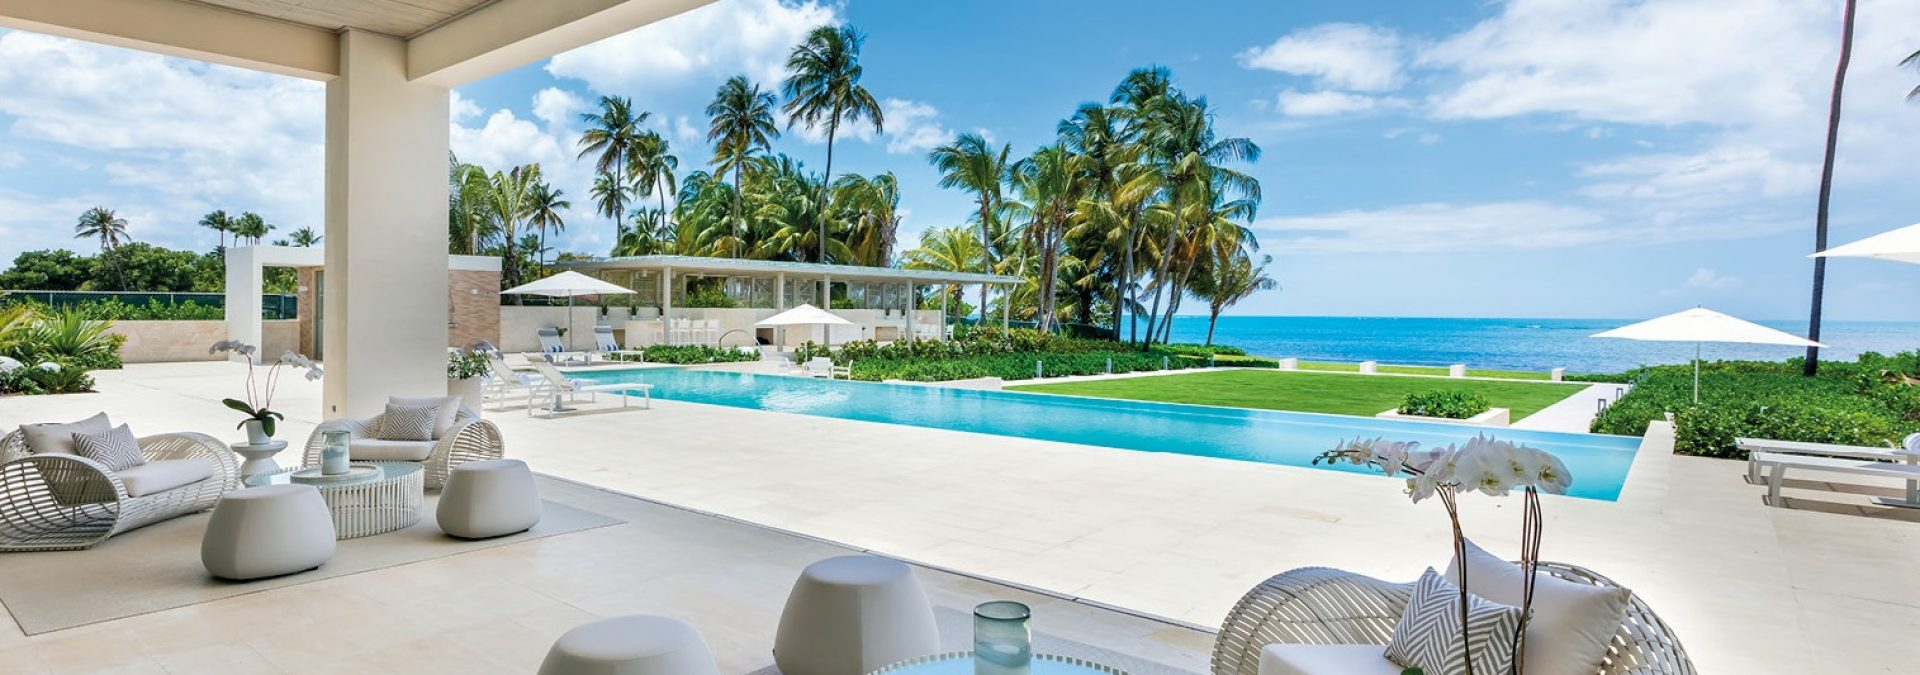 The Bahia Beach Resort Residences - Puerto Rico